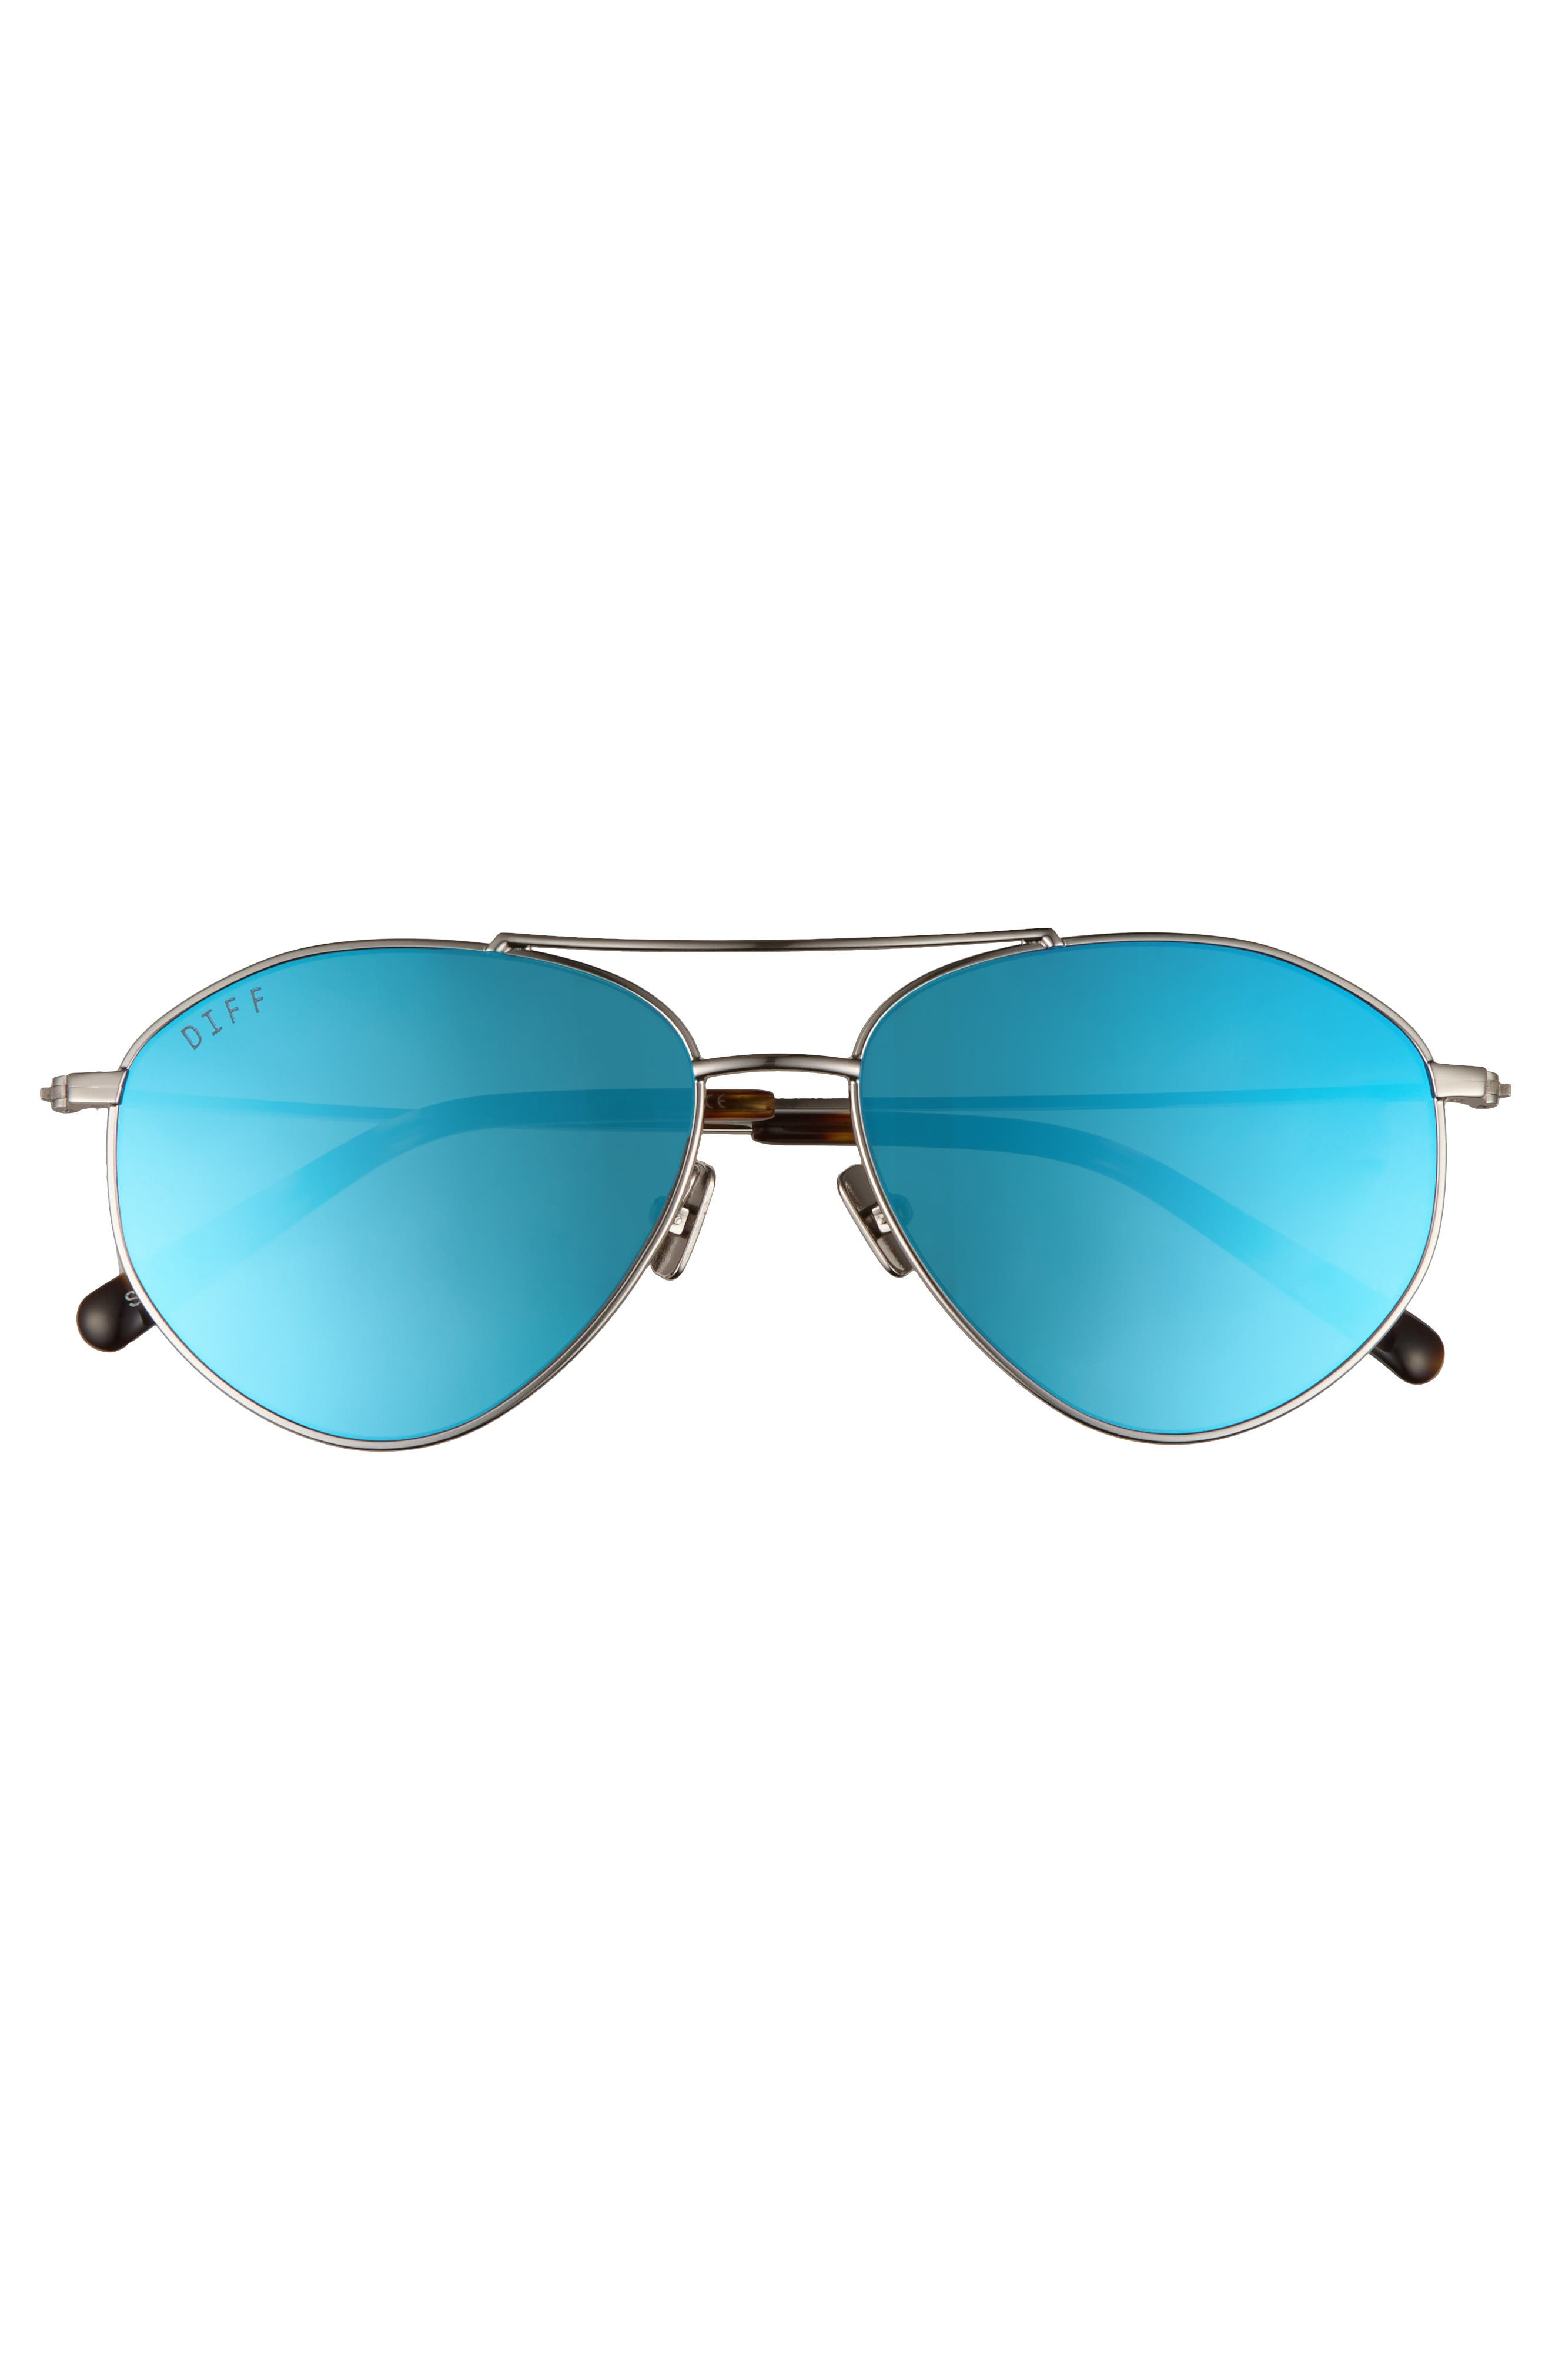 Scout 53mm Aviator Sunglasses,                             Alternate thumbnail 3, color,                             LIGHT GUNMETAL/ ICE BLUE